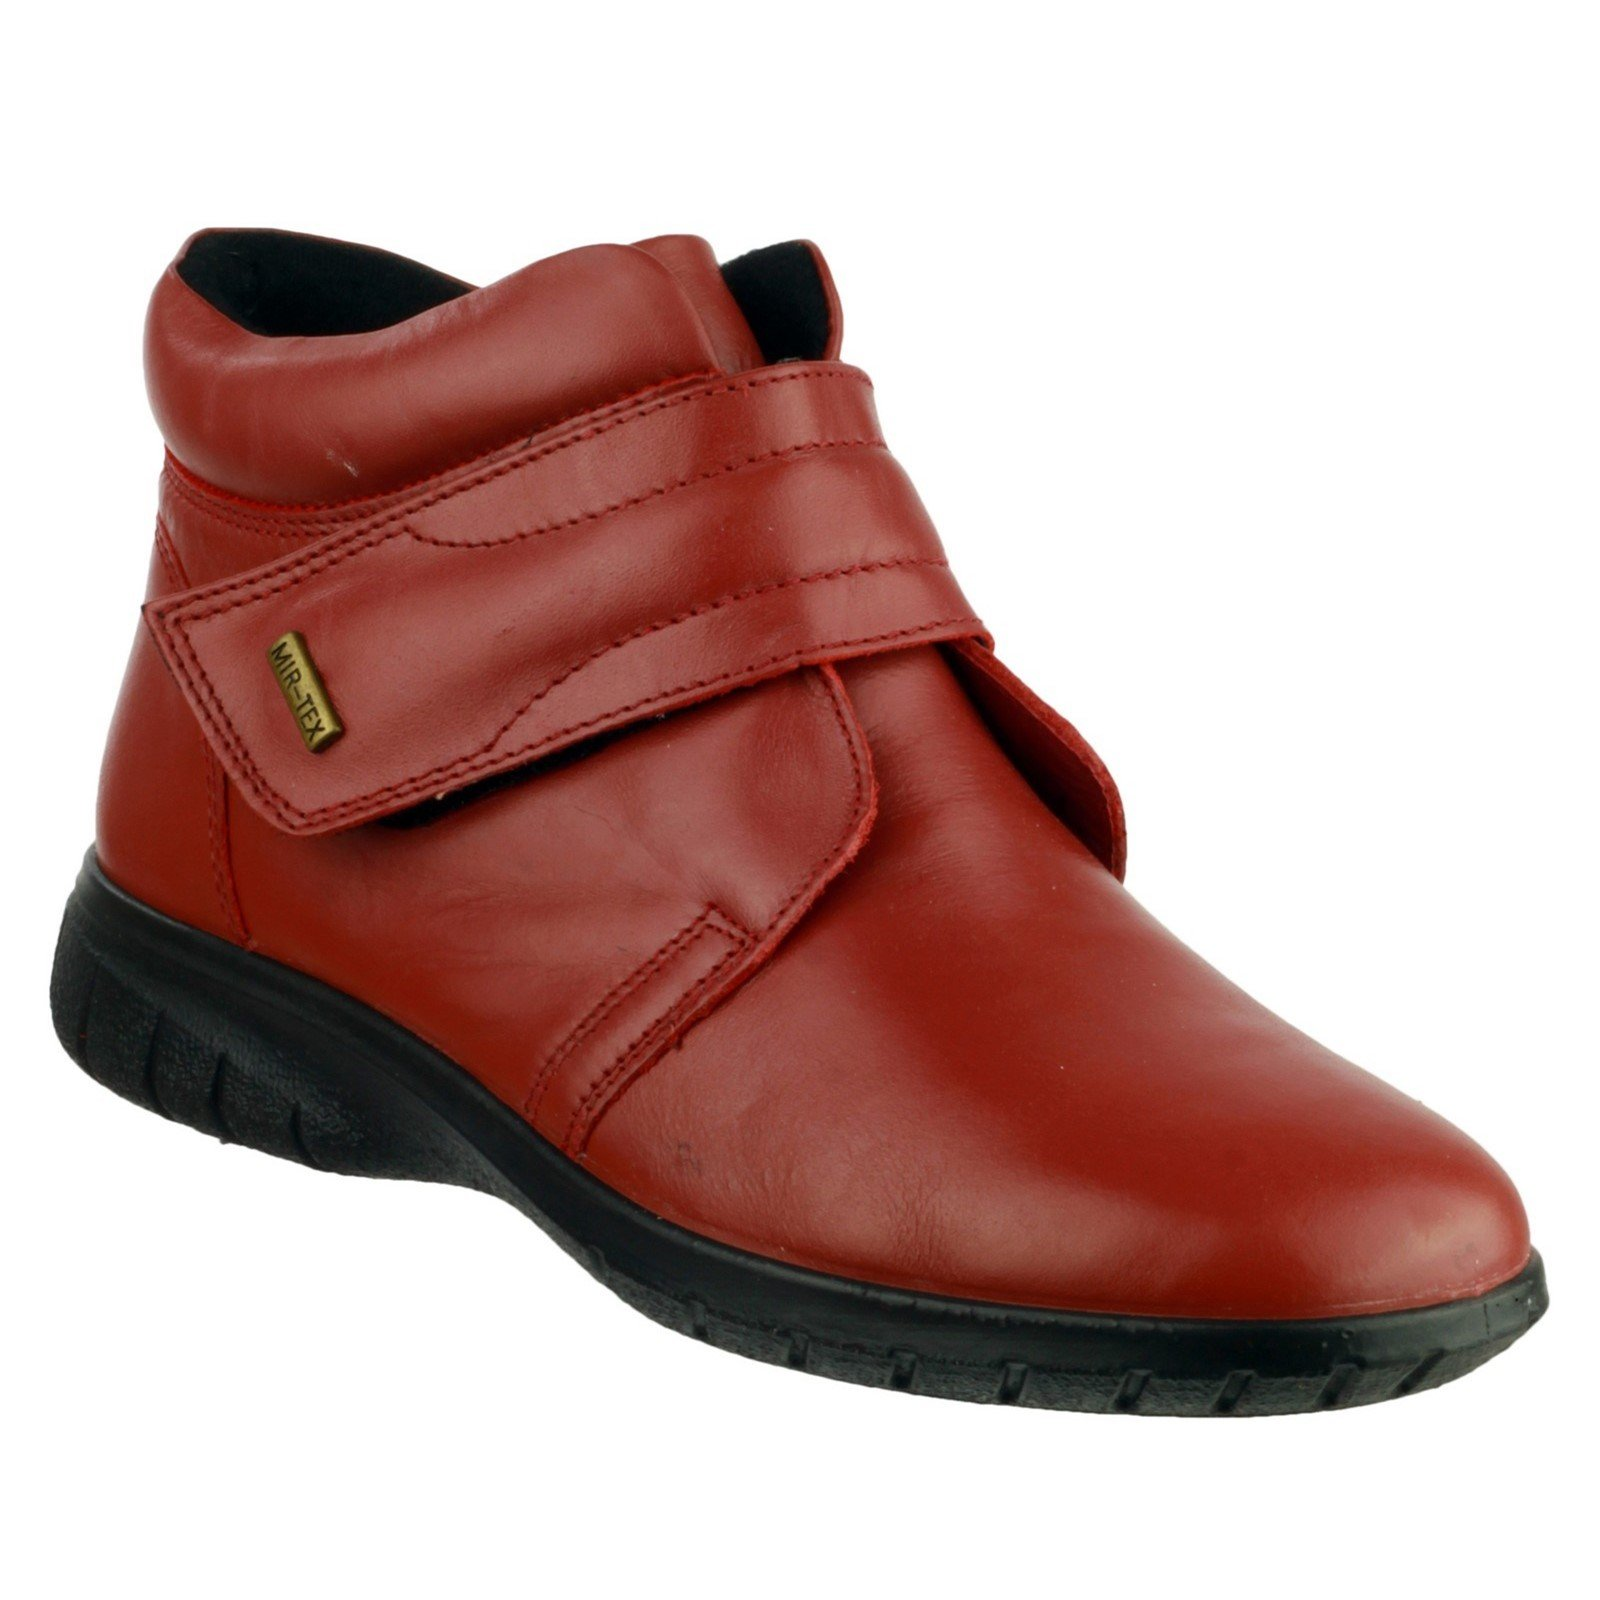 Cotswold Women's Chalford 2 Ankle Boot Various Colours 32977 - Red 7